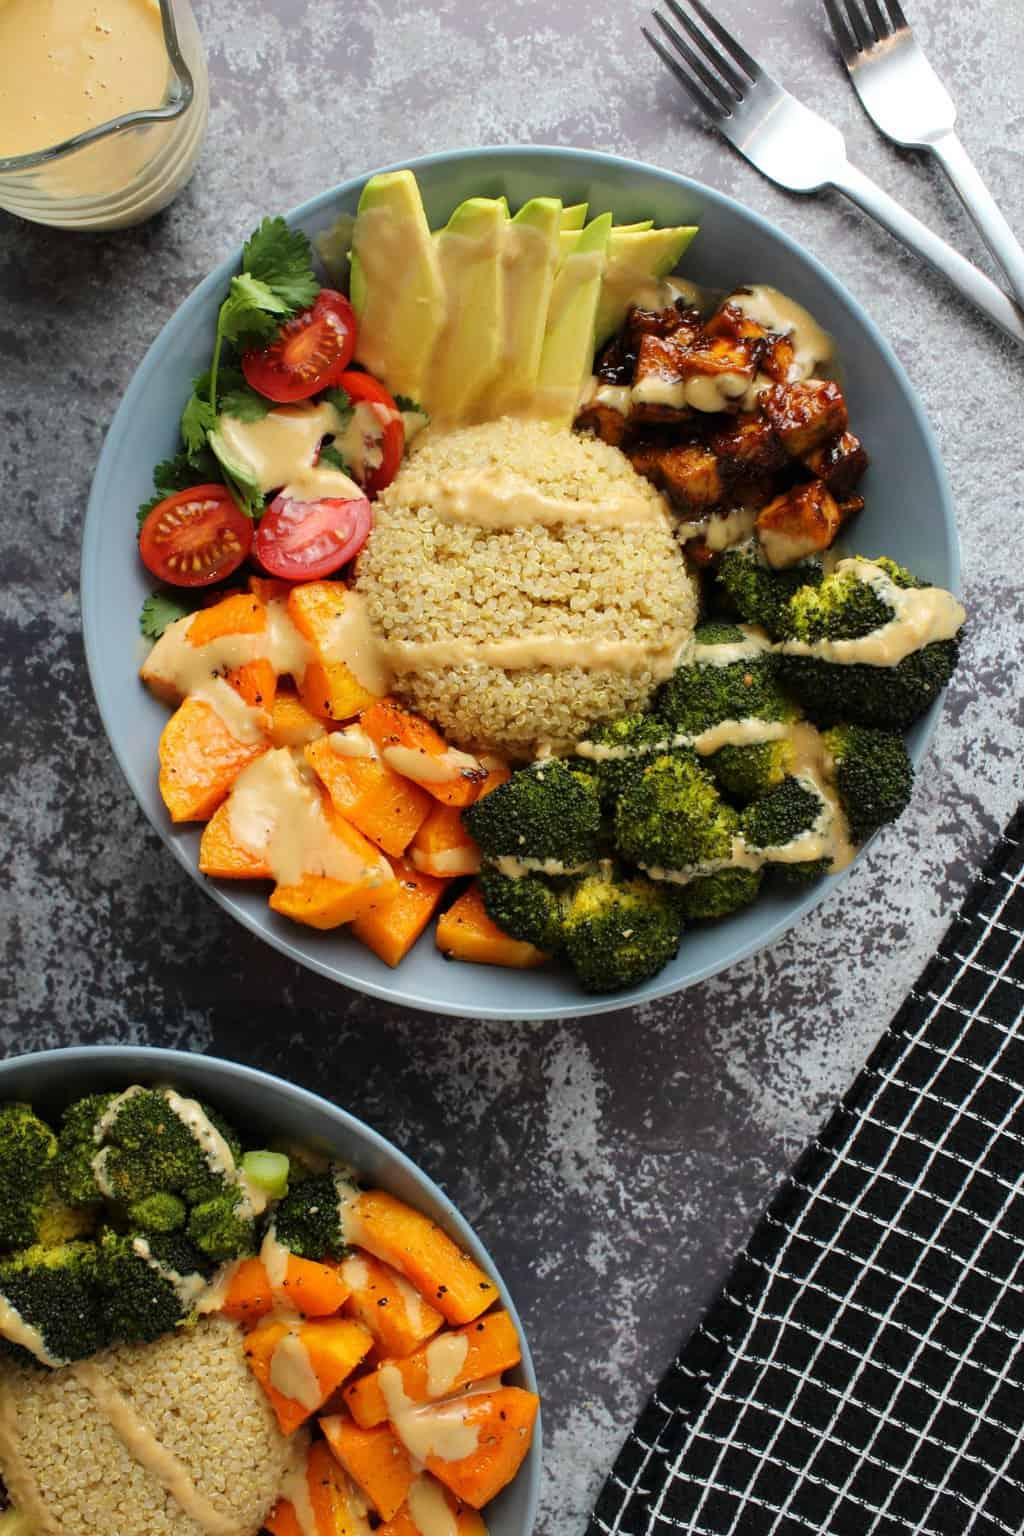 Buddha bowl with quinoa, tofu, vegetables and a drizzled dressing.